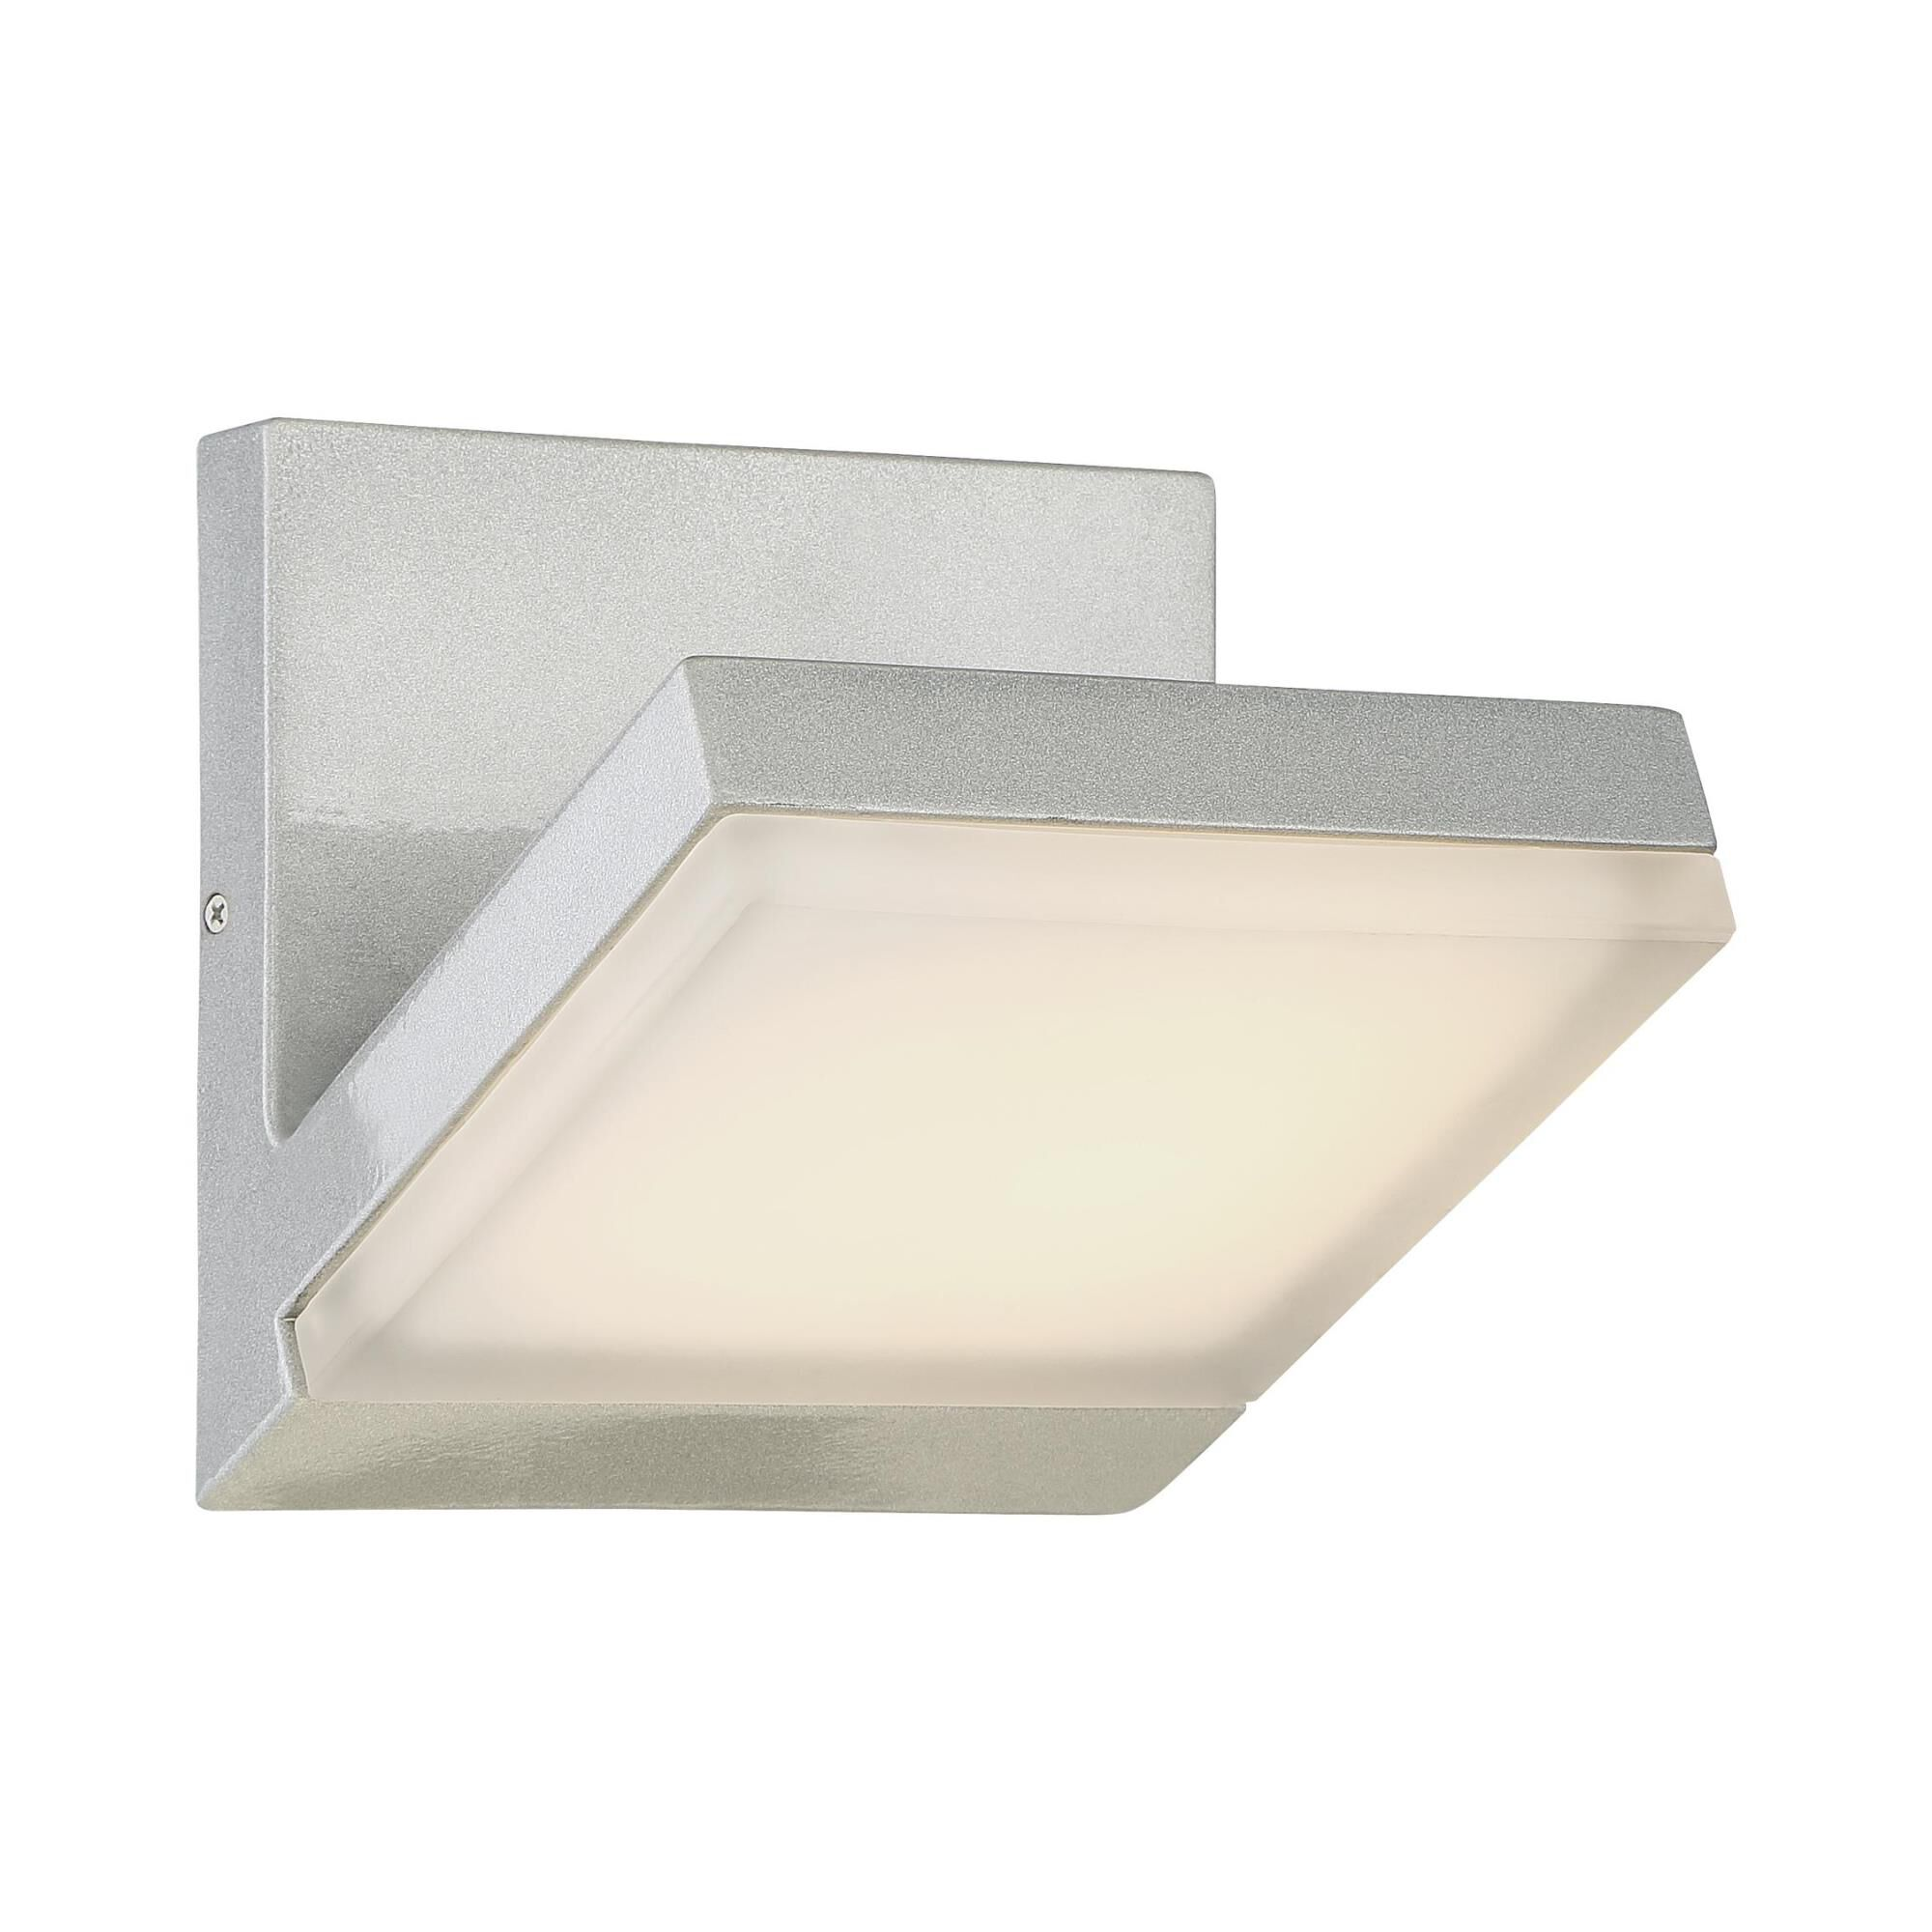 Kovacs Angle 6 Inch Tall 1 Light Led Outdoor Wall Light Angle - P1259-566-l - Transitional